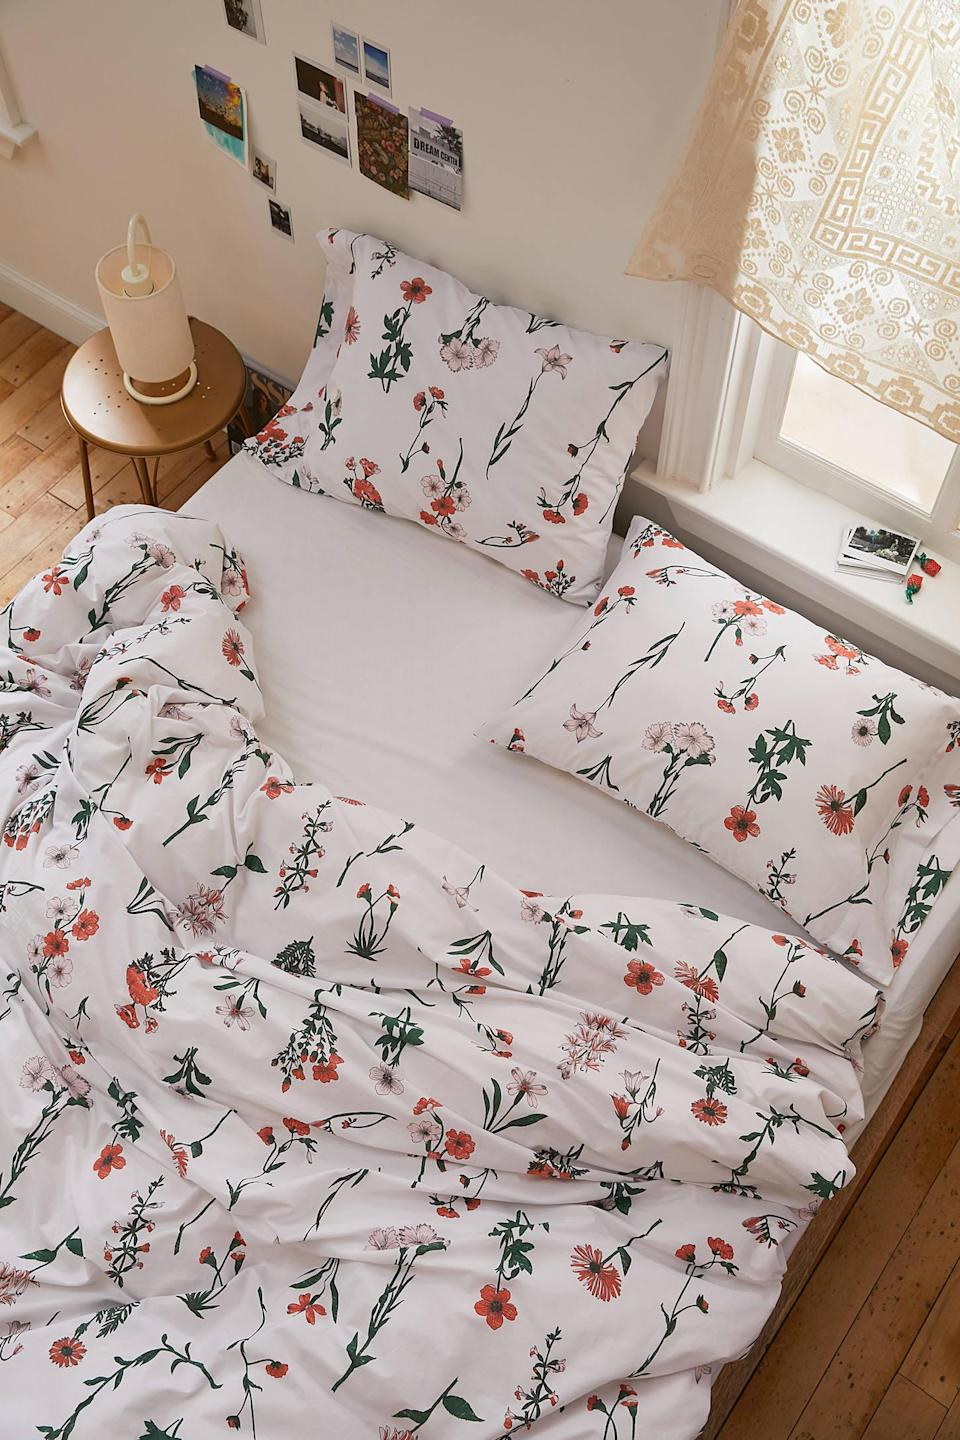 """<br> <br> <strong>Urban Outfitters</strong> Georgina Stems Duvet Set, $, available at <a href=""""https://go.skimresources.com/?id=30283X879131&url=https%3A%2F%2Fwww.urbanoutfitters.com%2Fshop%2Fgeorgina-stems-duvet-set"""" rel=""""nofollow noopener"""" target=""""_blank"""" data-ylk=""""slk:Urban Outfitters"""" class=""""link rapid-noclick-resp"""">Urban Outfitters</a>"""